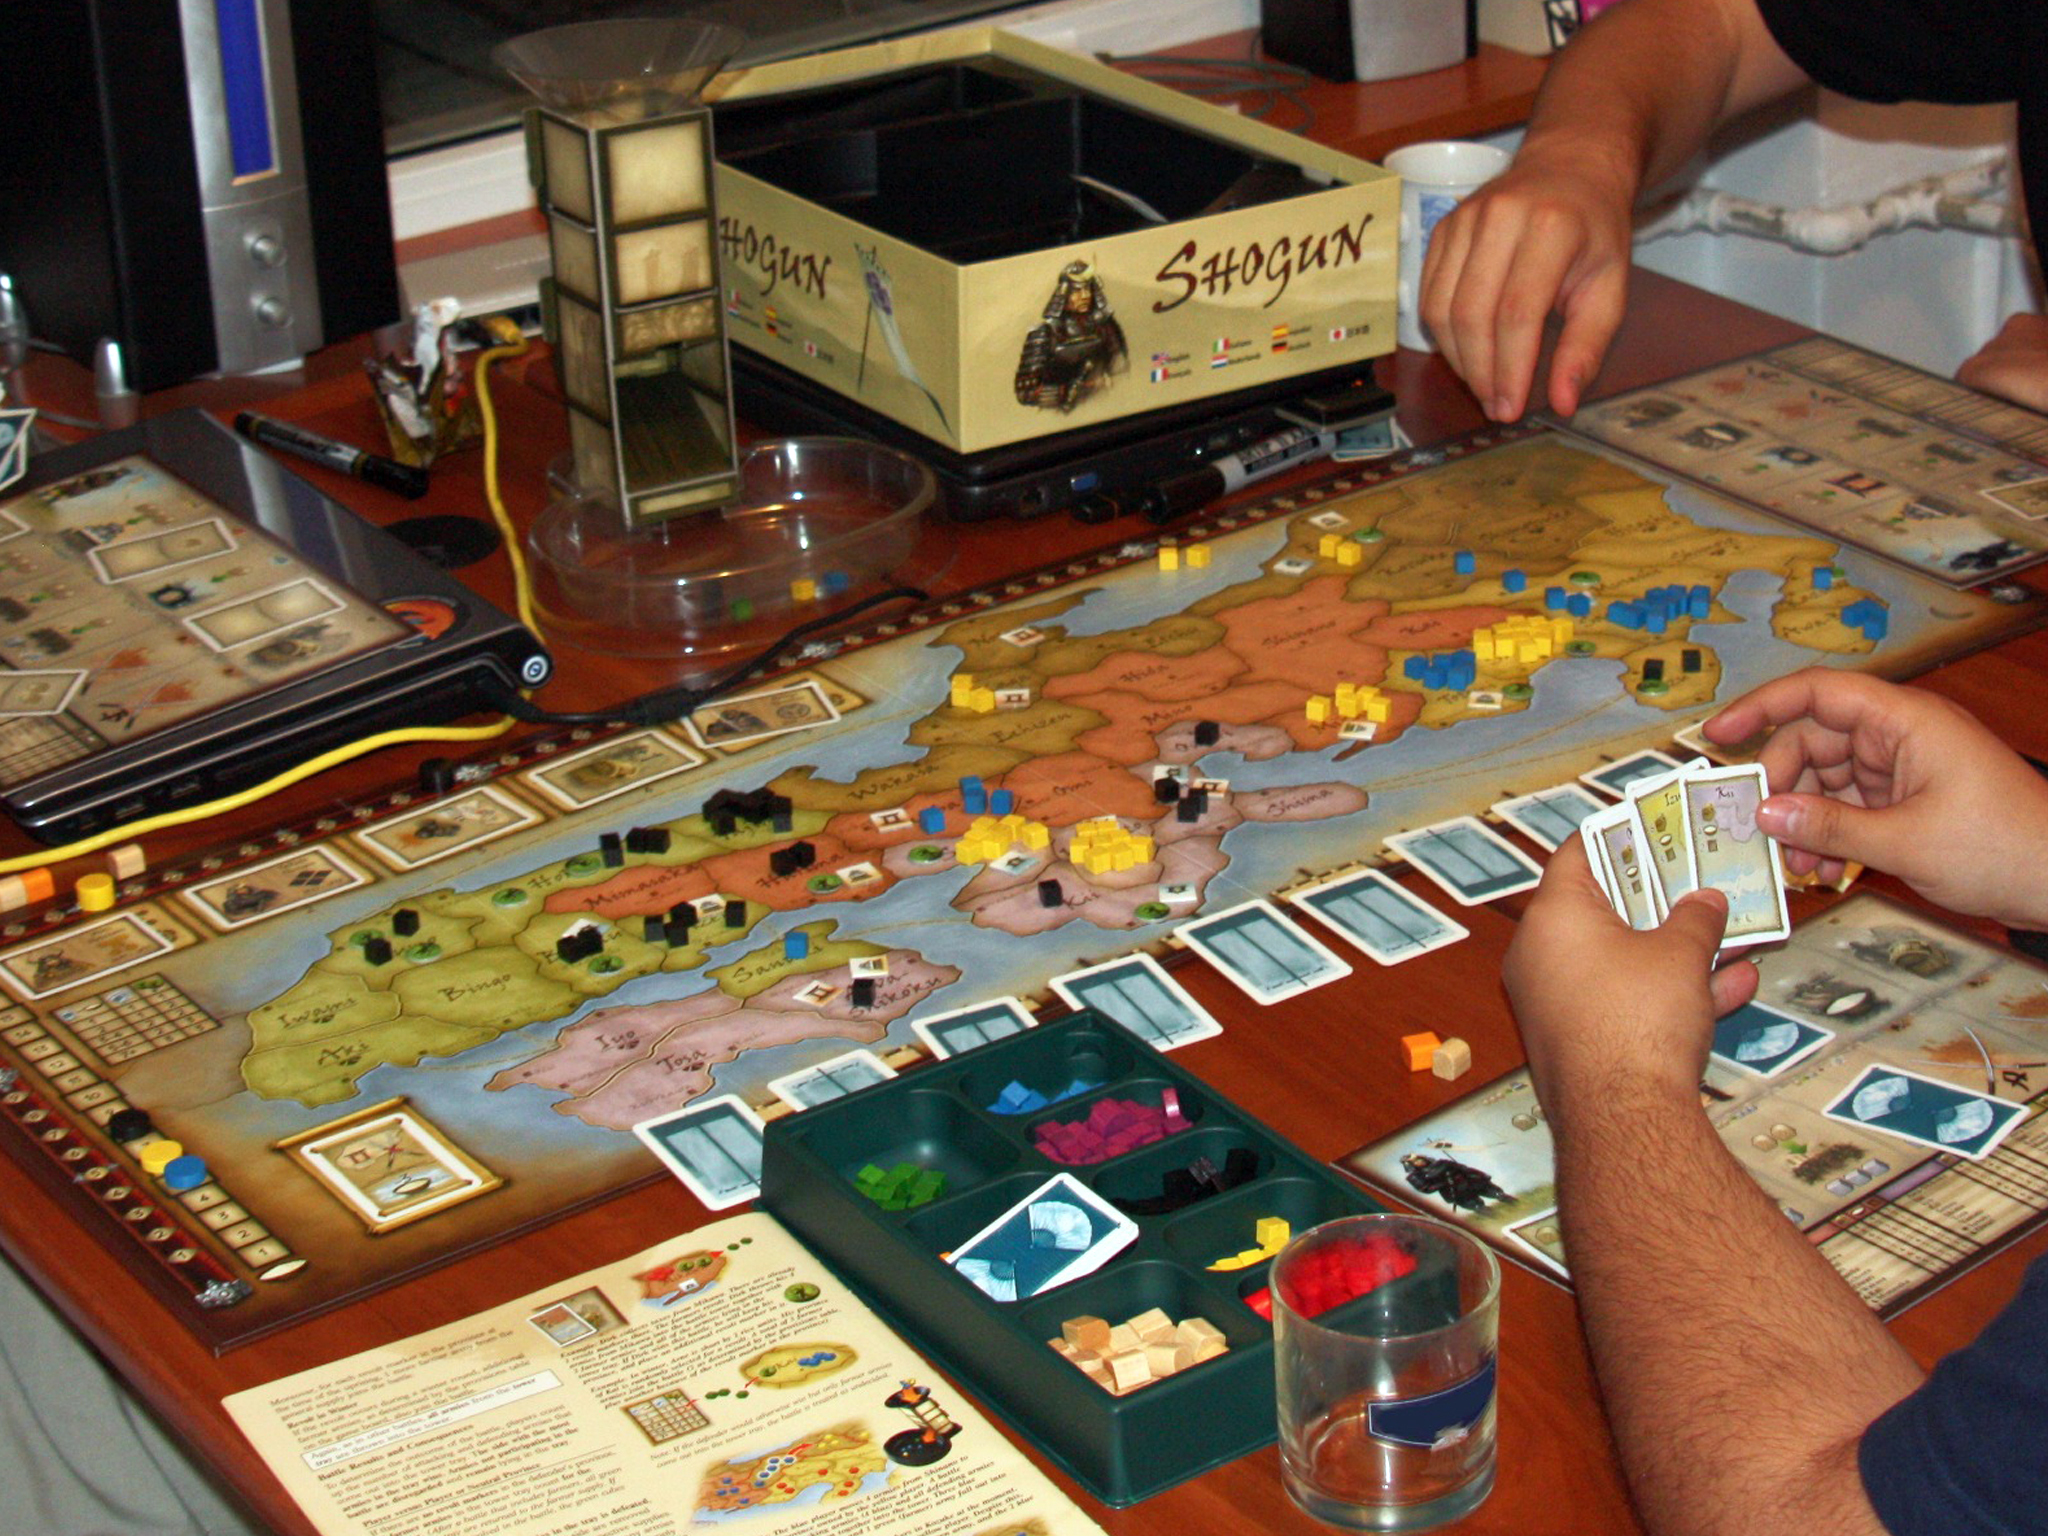 Board Games - Shogun